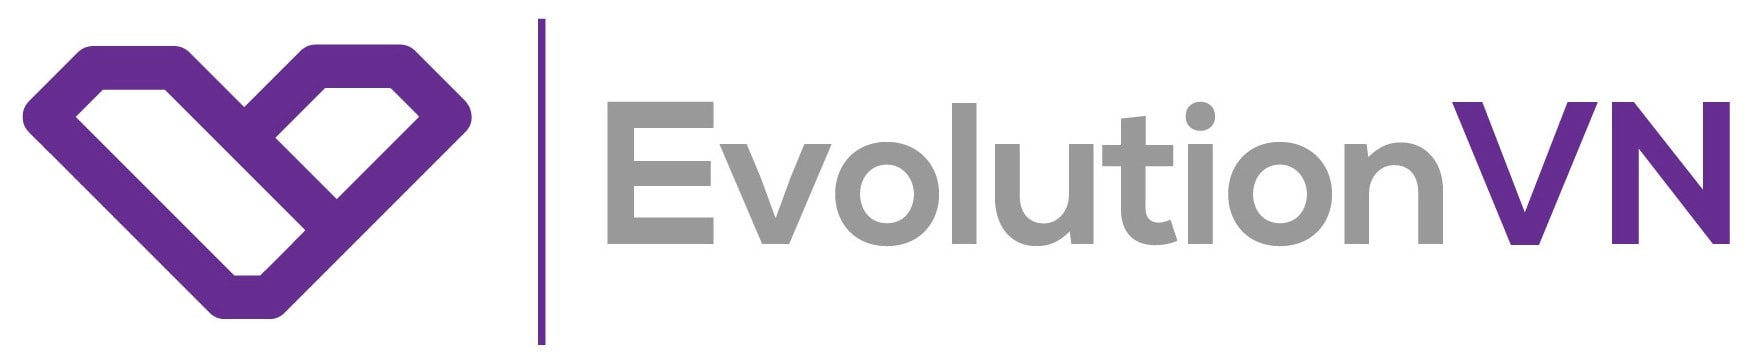 EvolutionVN